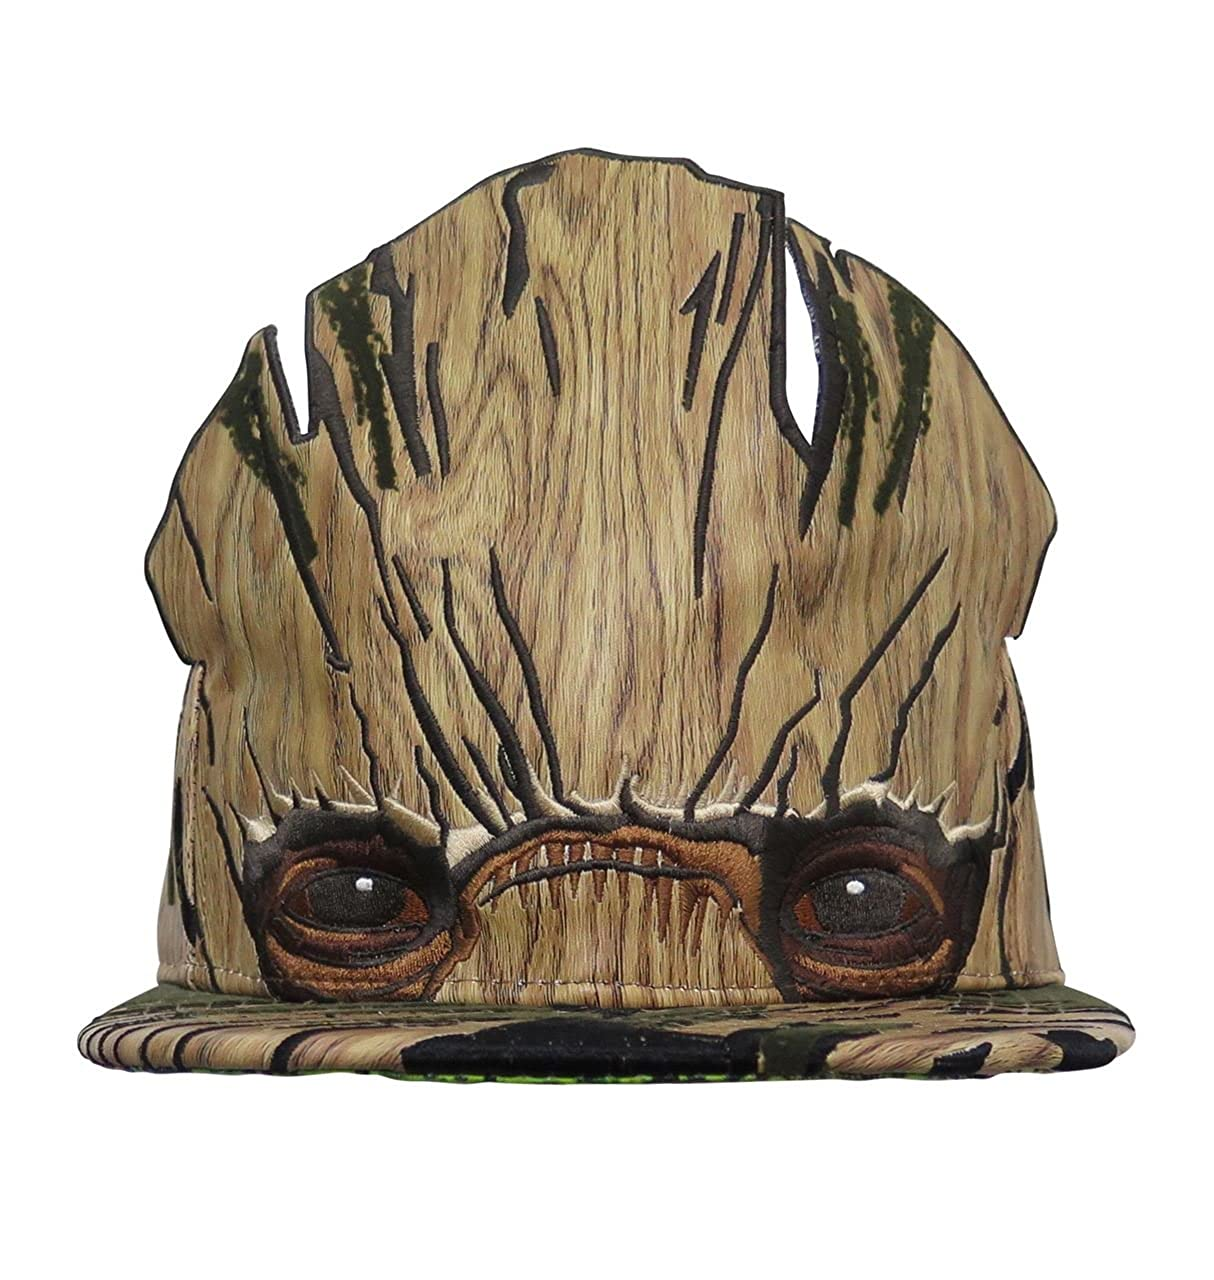 buy online 920e7 0dc2a New Era GOTG Groot Armor 9Fifty Adjustable Hat at Amazon Men s Clothing  store